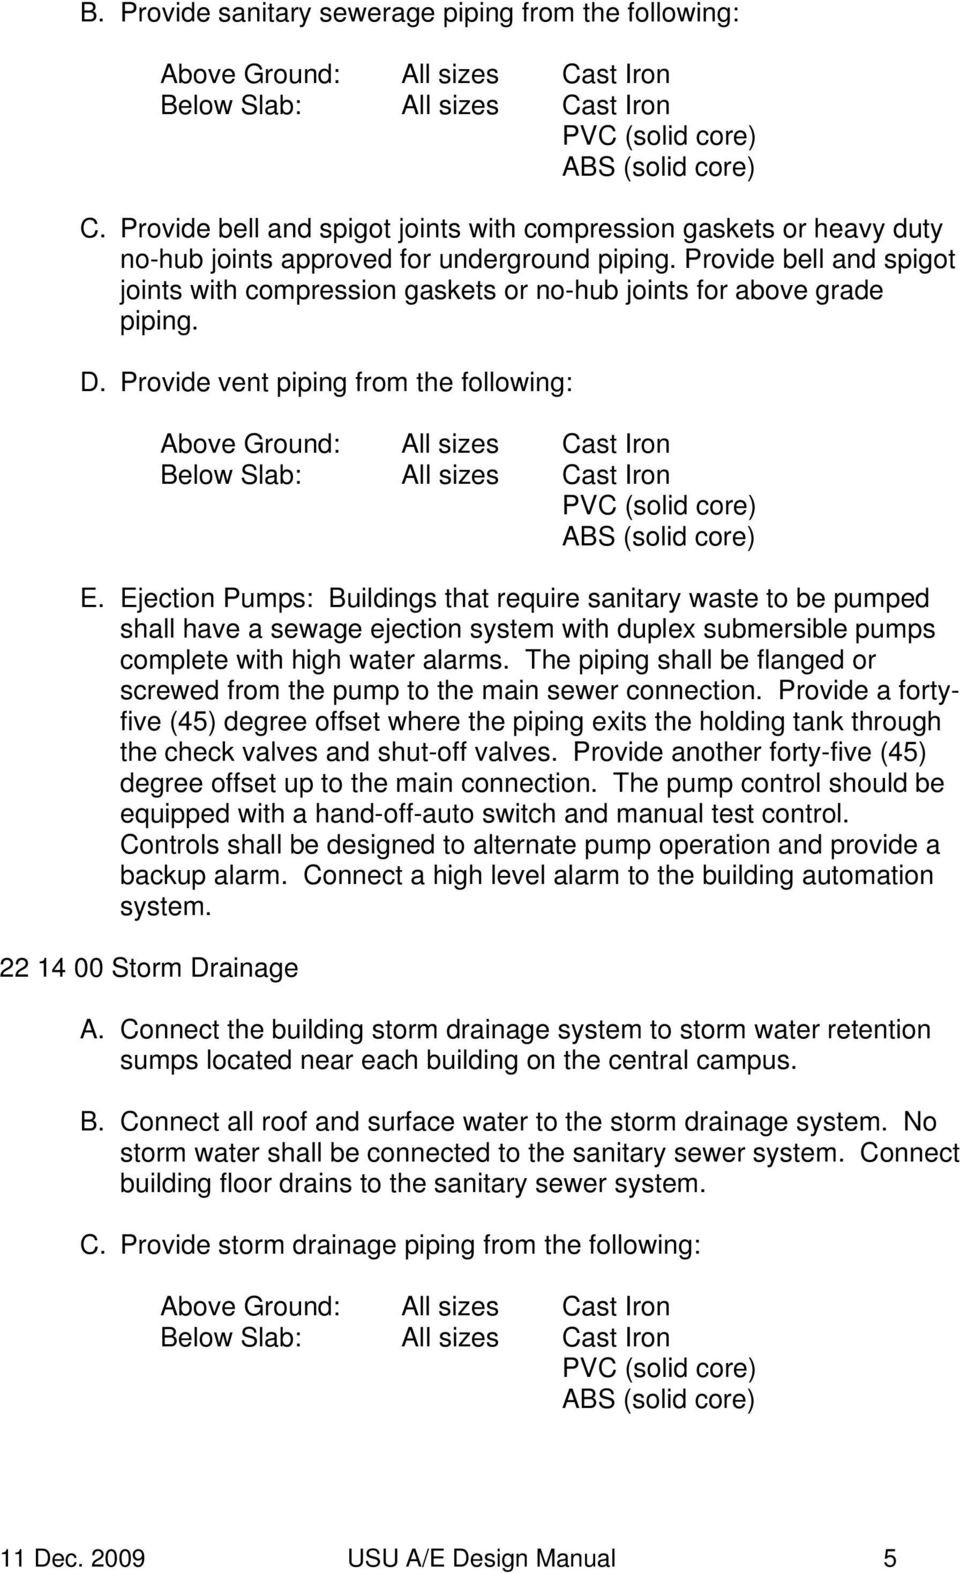 Provide bell and spigot joints with compression gaskets or no-hub joints for above grade piping. D.